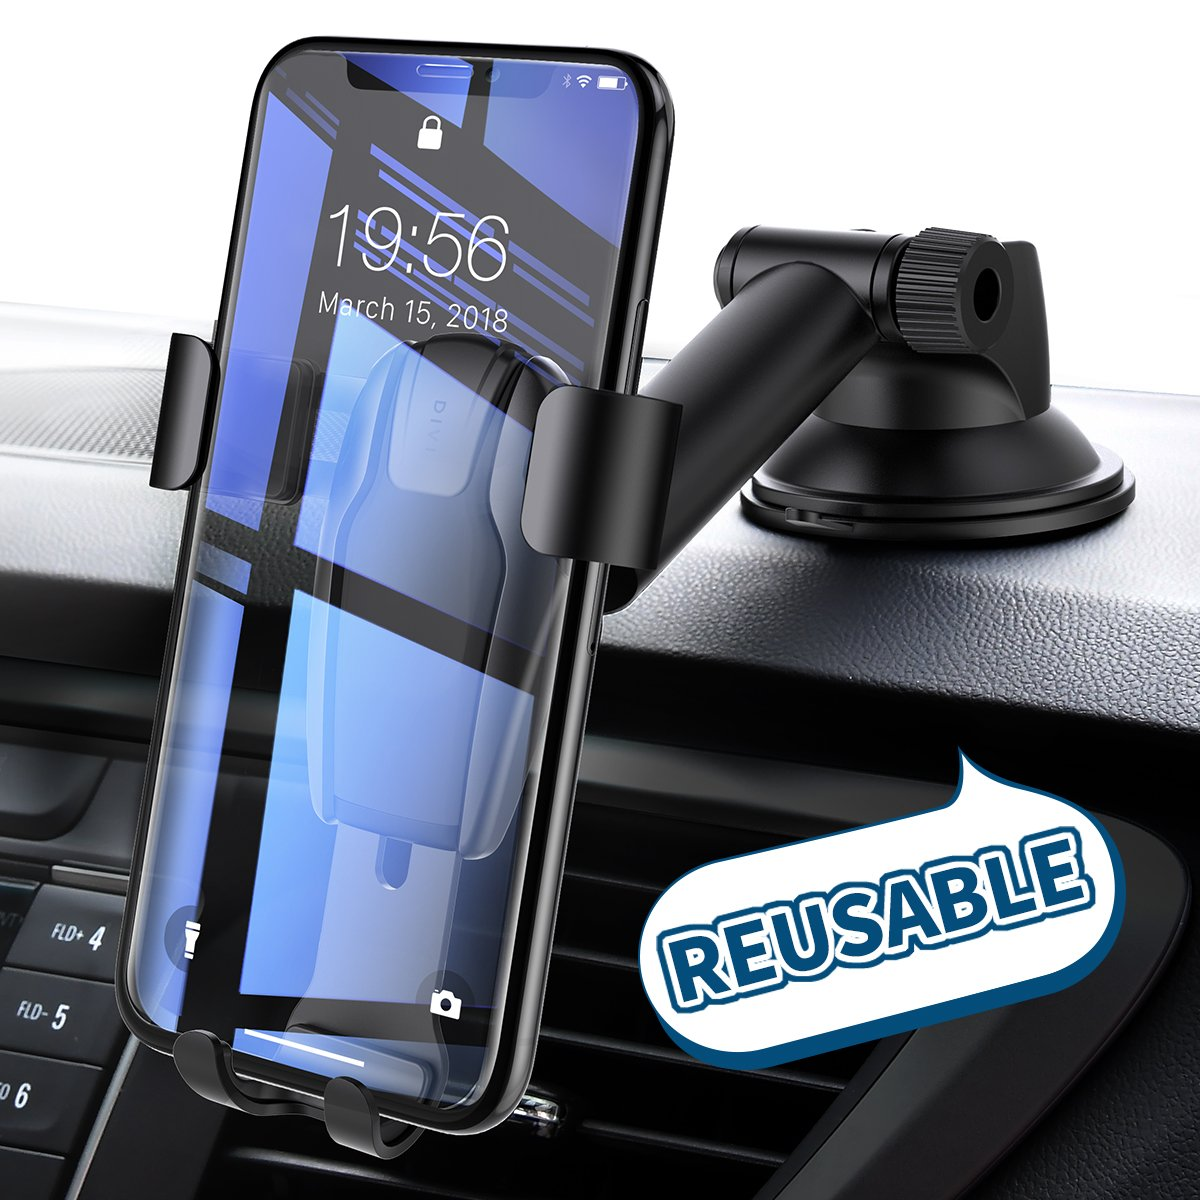 Cell Phone Holder Car, Universal Dashboard Cell Phone Holder Gravity Auto-Clamping Car Cradle Mount Adjustable Car Holder Phone X/ 8/7/ 6s/ Plus, Galaxy S9/ S8/ S7 Edge - Ainope by Ainope (Image #1)